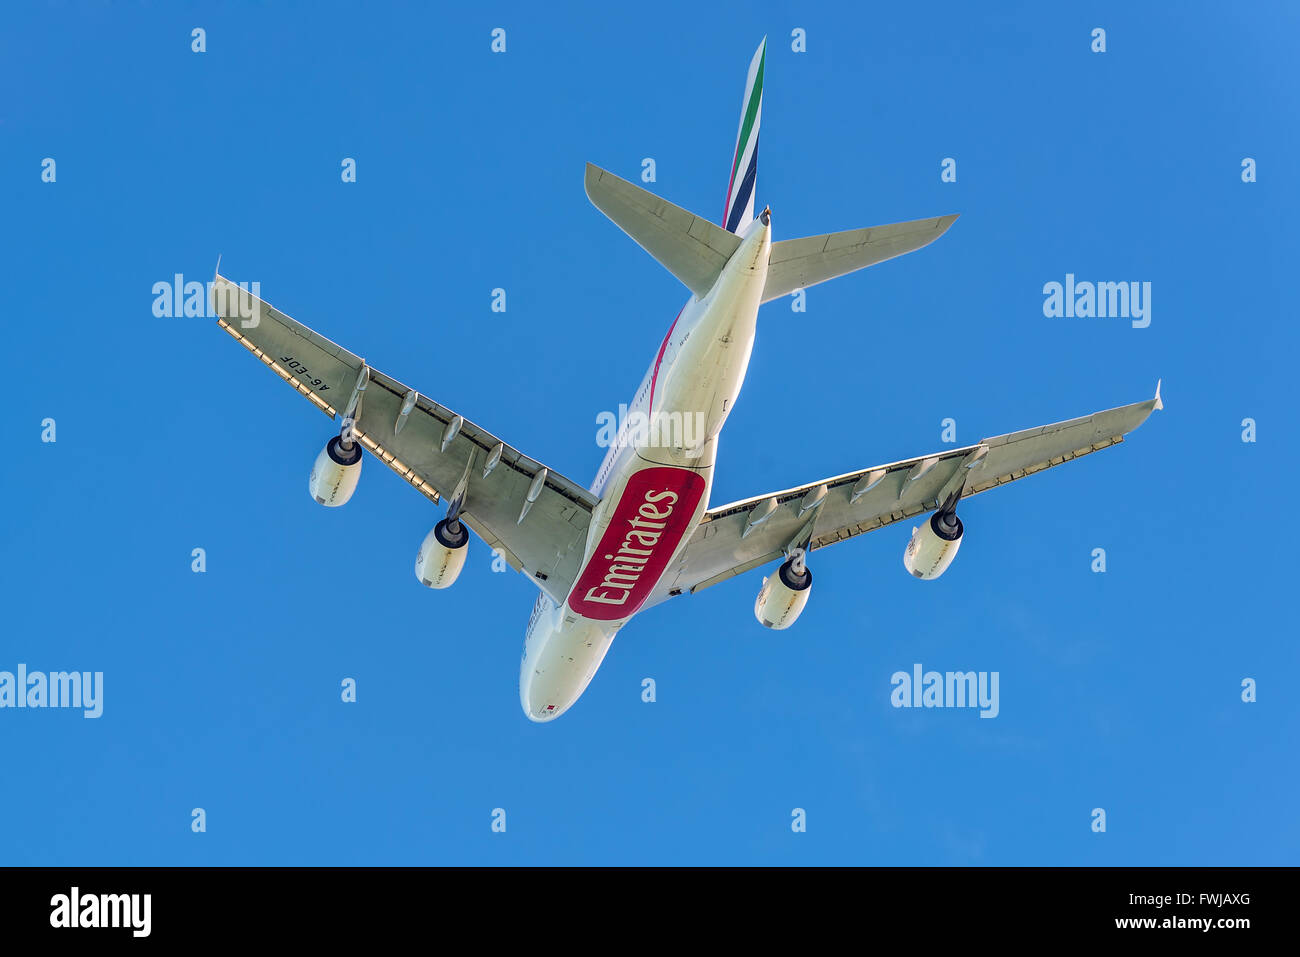 The Airbus A380-841 aircraft of Emirates Airlines takeoff from the Sir Seewoosagur Ramgoolam International Airport - Stock Image